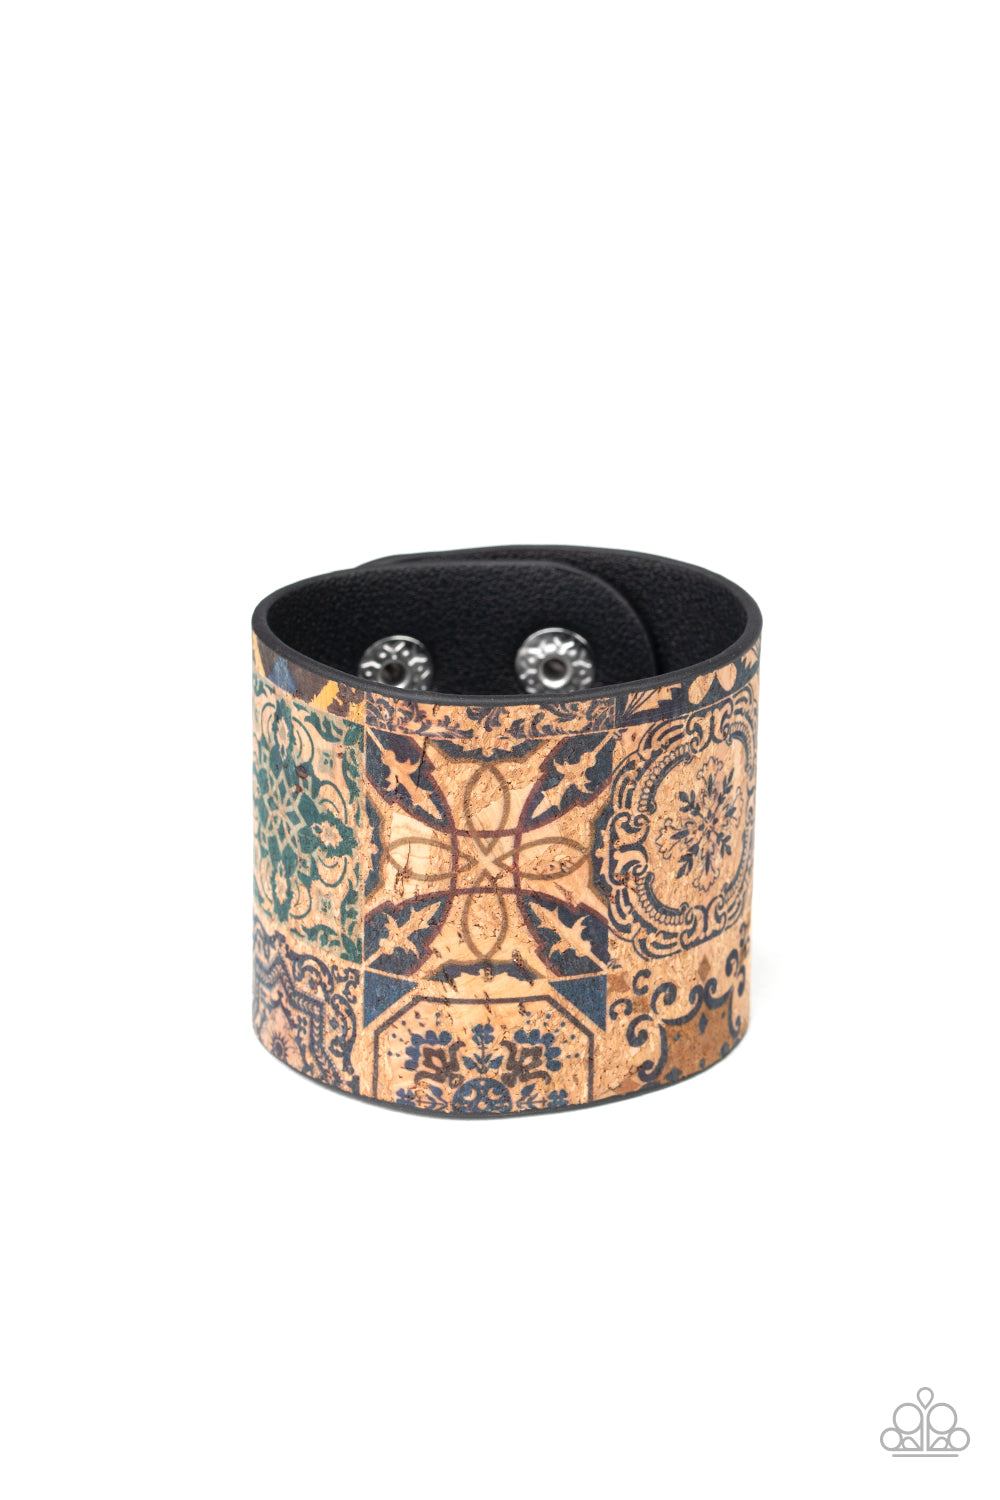 PAPARAZZI BRACELET - Cork Culture - Multi